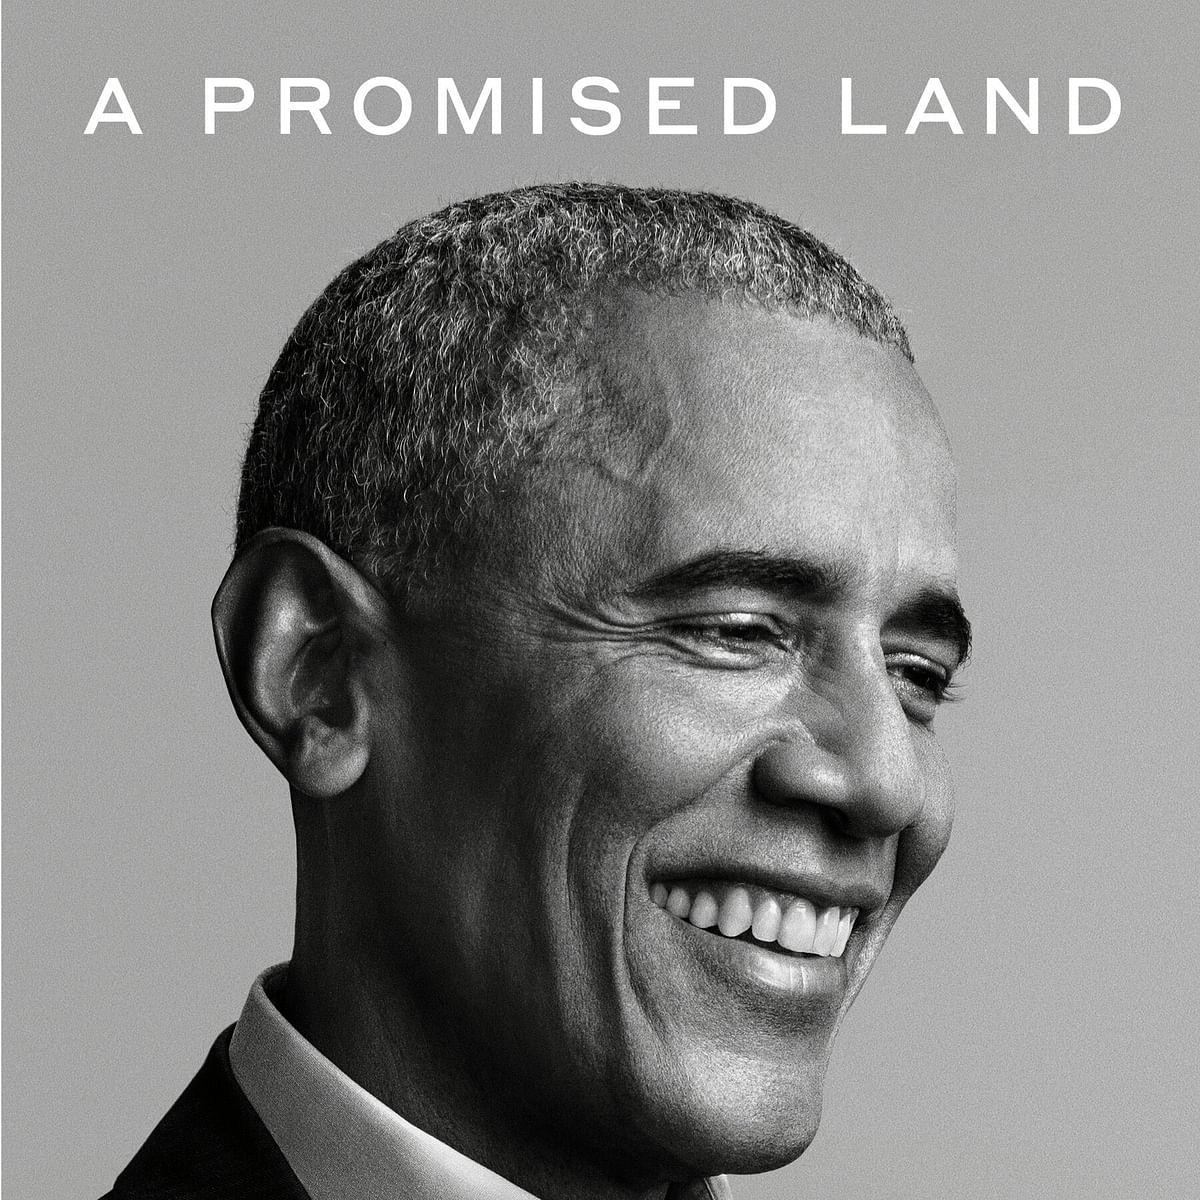 Obama's book unleashes Western stereotype of violence, caste in India